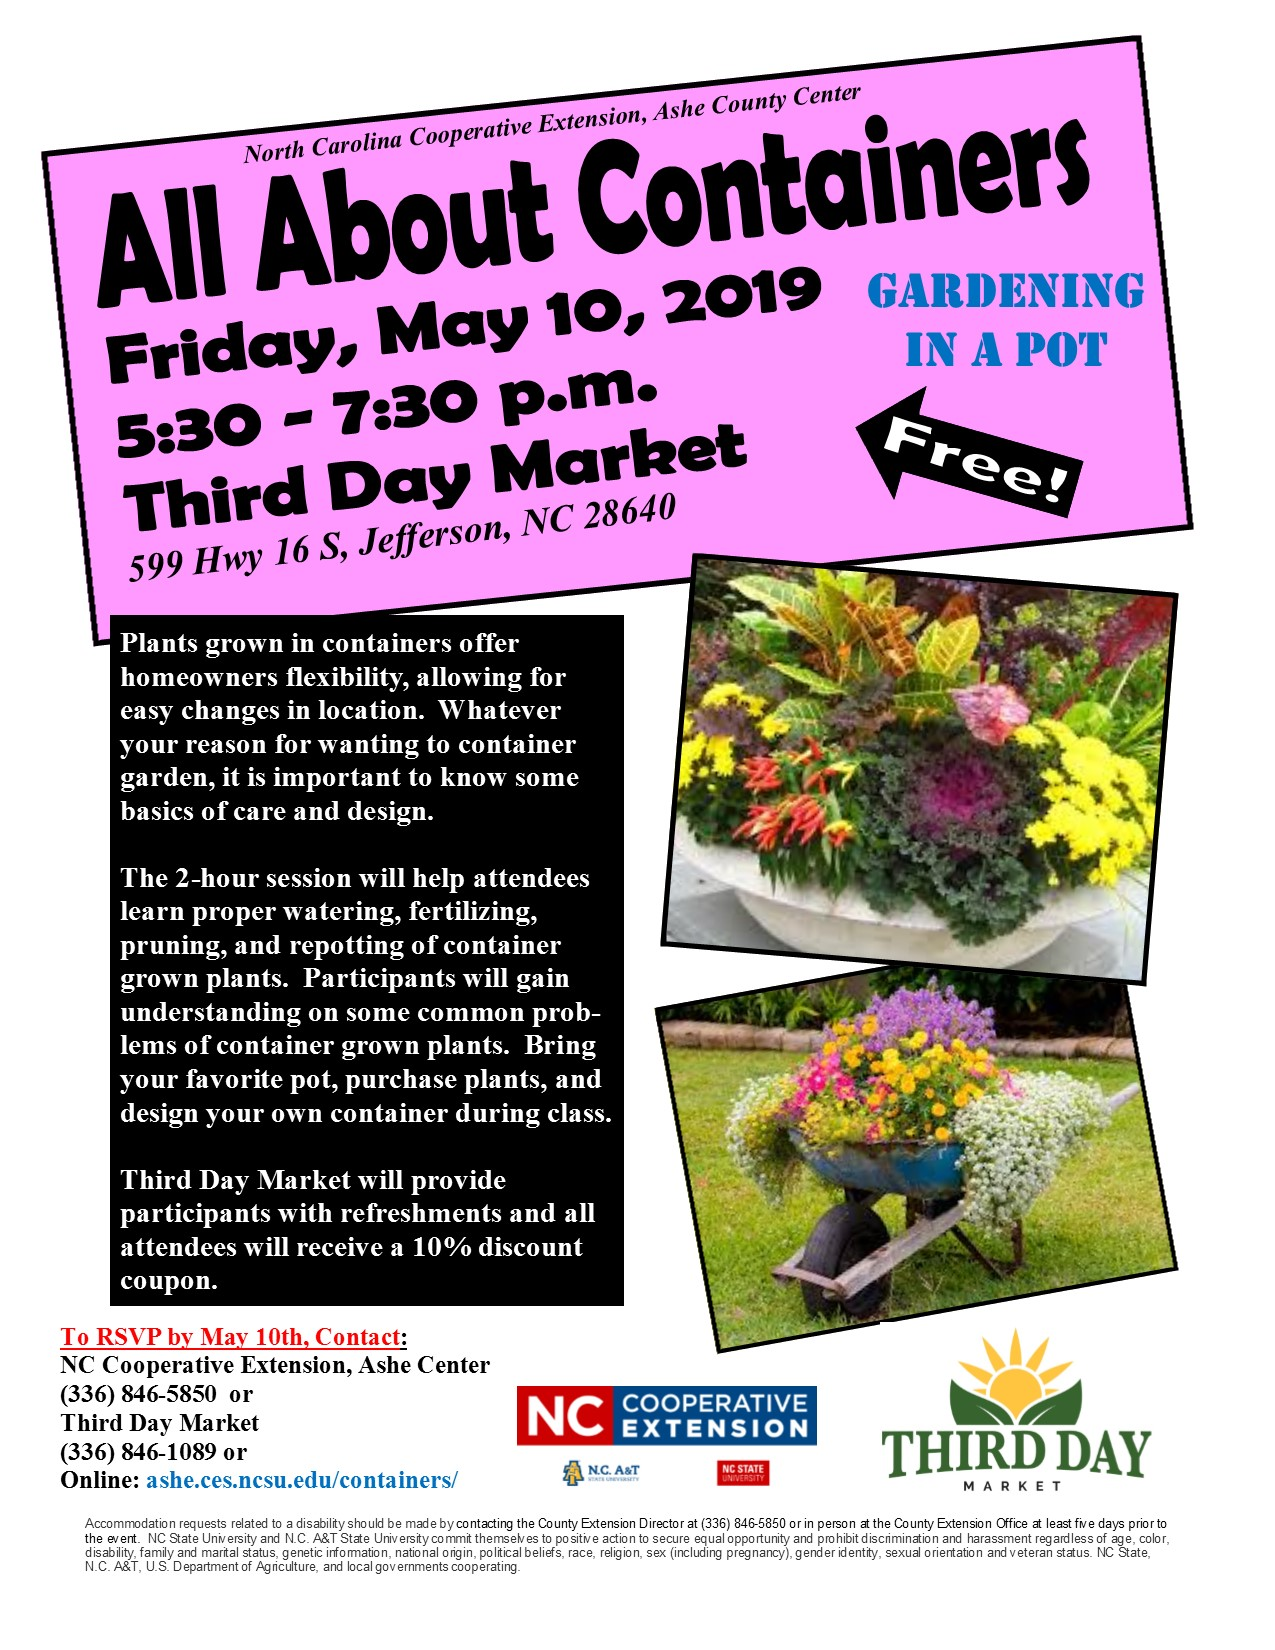 All About Containers - gardening workshop poster